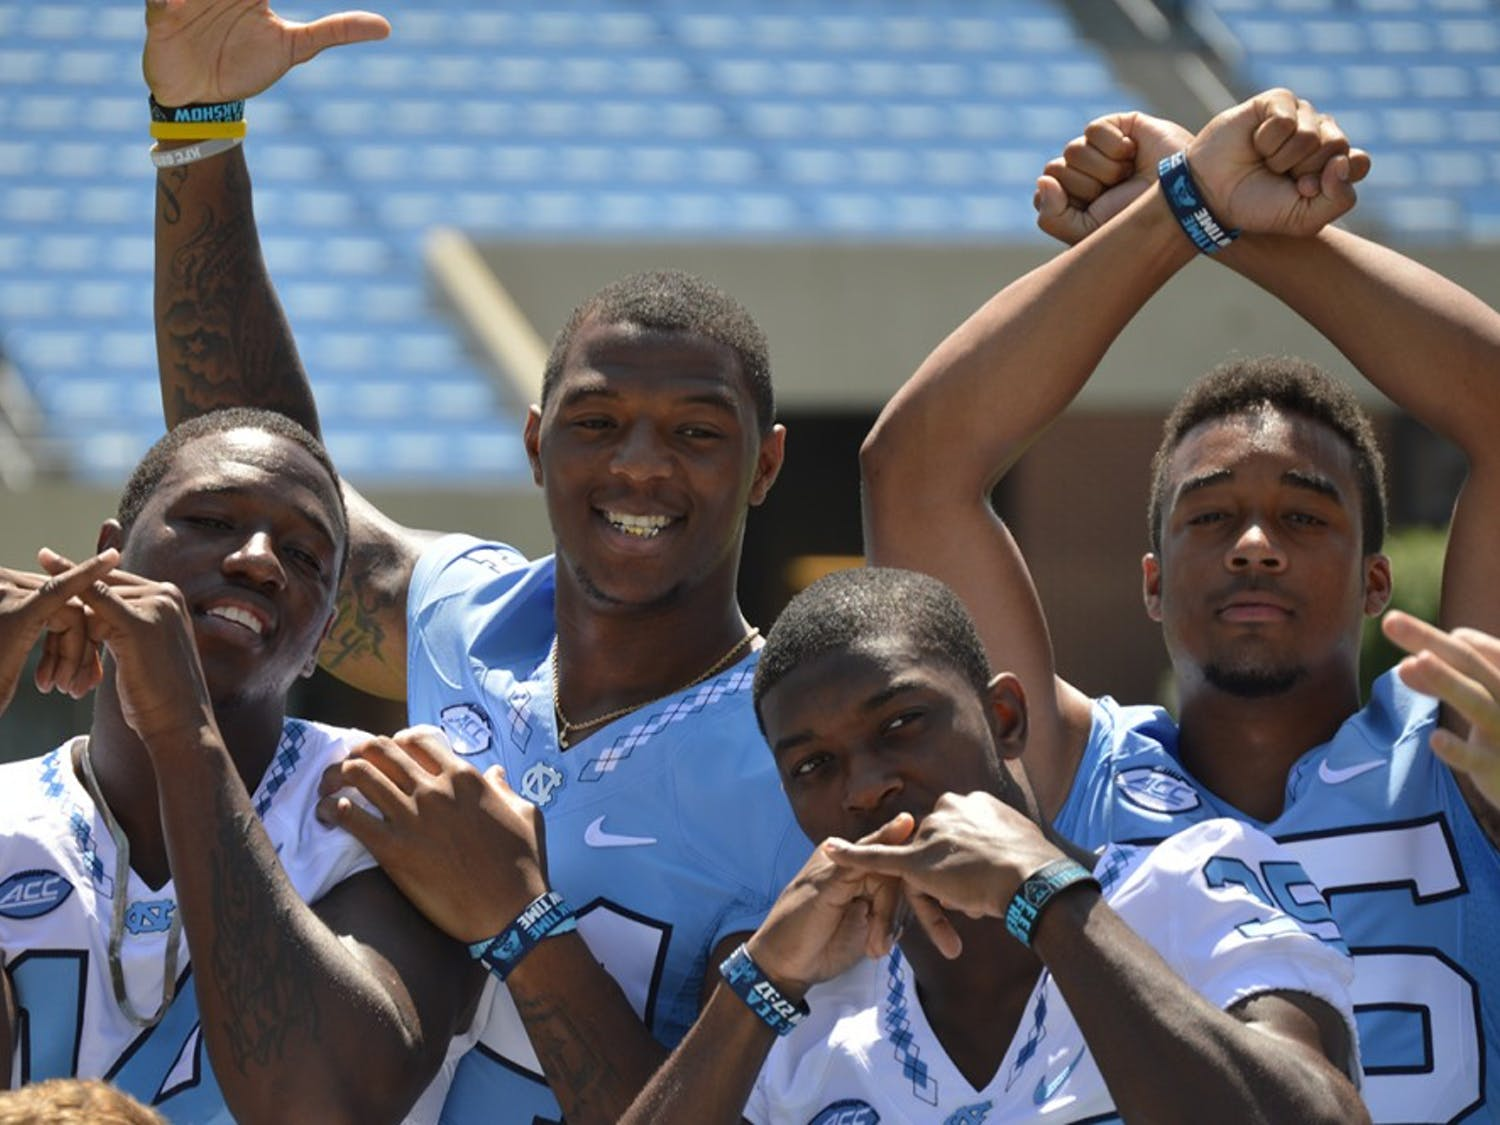 Quinshad Davis, Bug Howard, Damien Washington and Devin Perry posing for the camera.